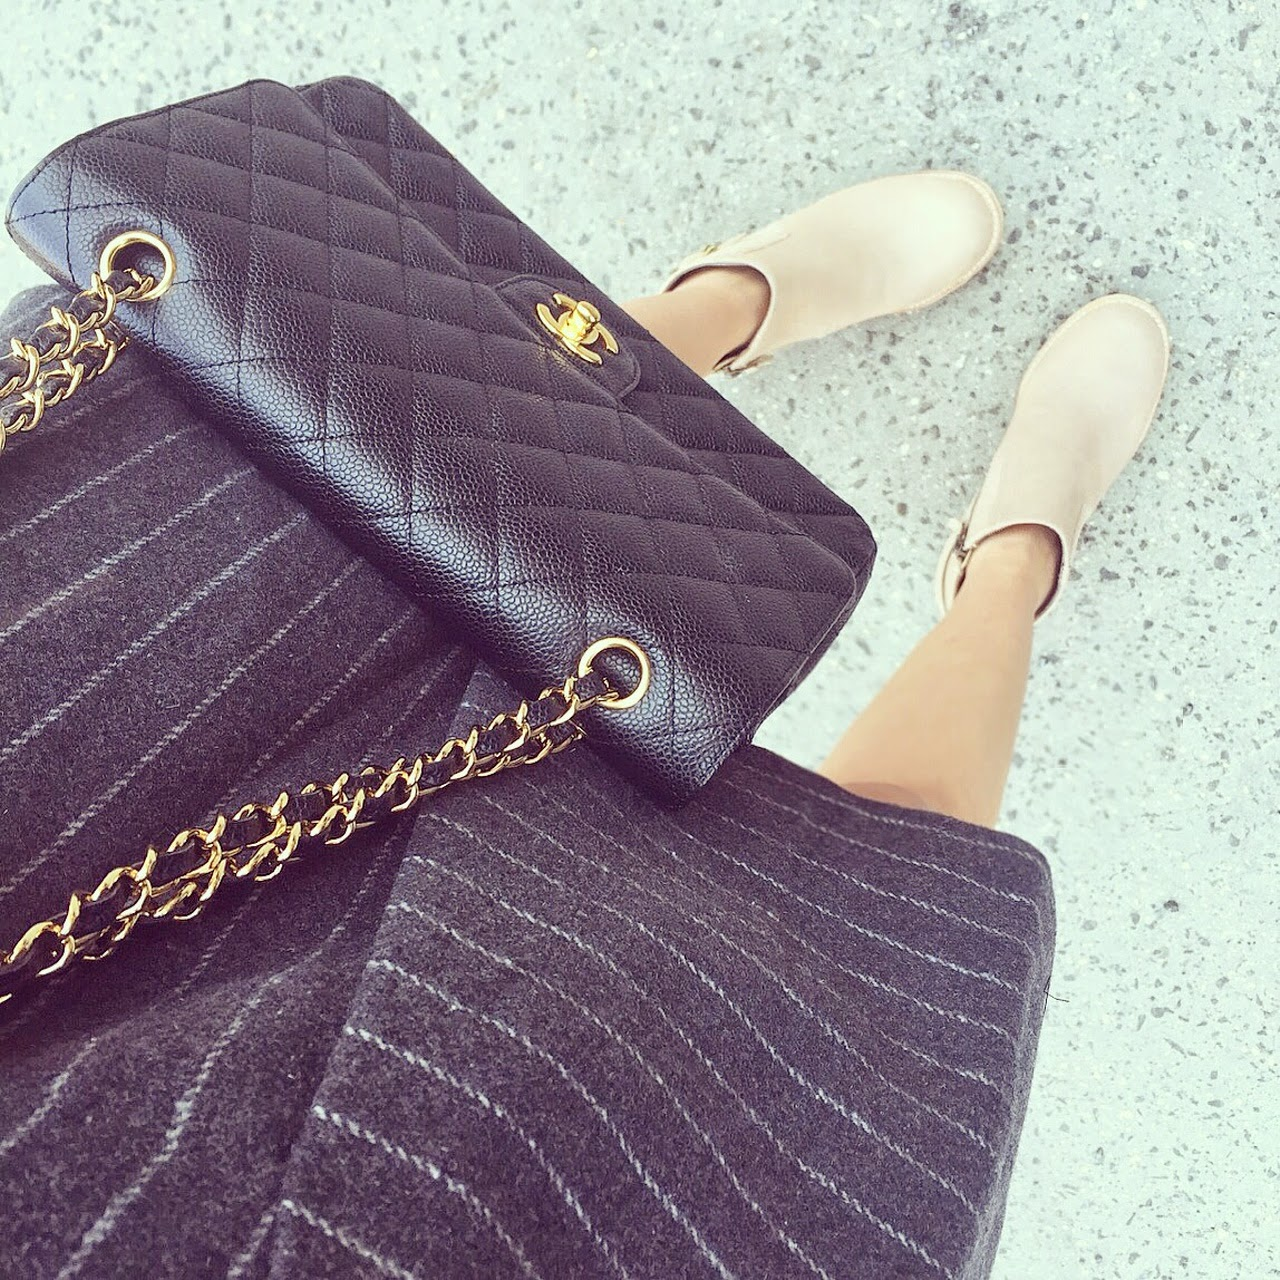 joa pinstripe dress, cat foot wear boots, classic chanel flap bag, fashion blog